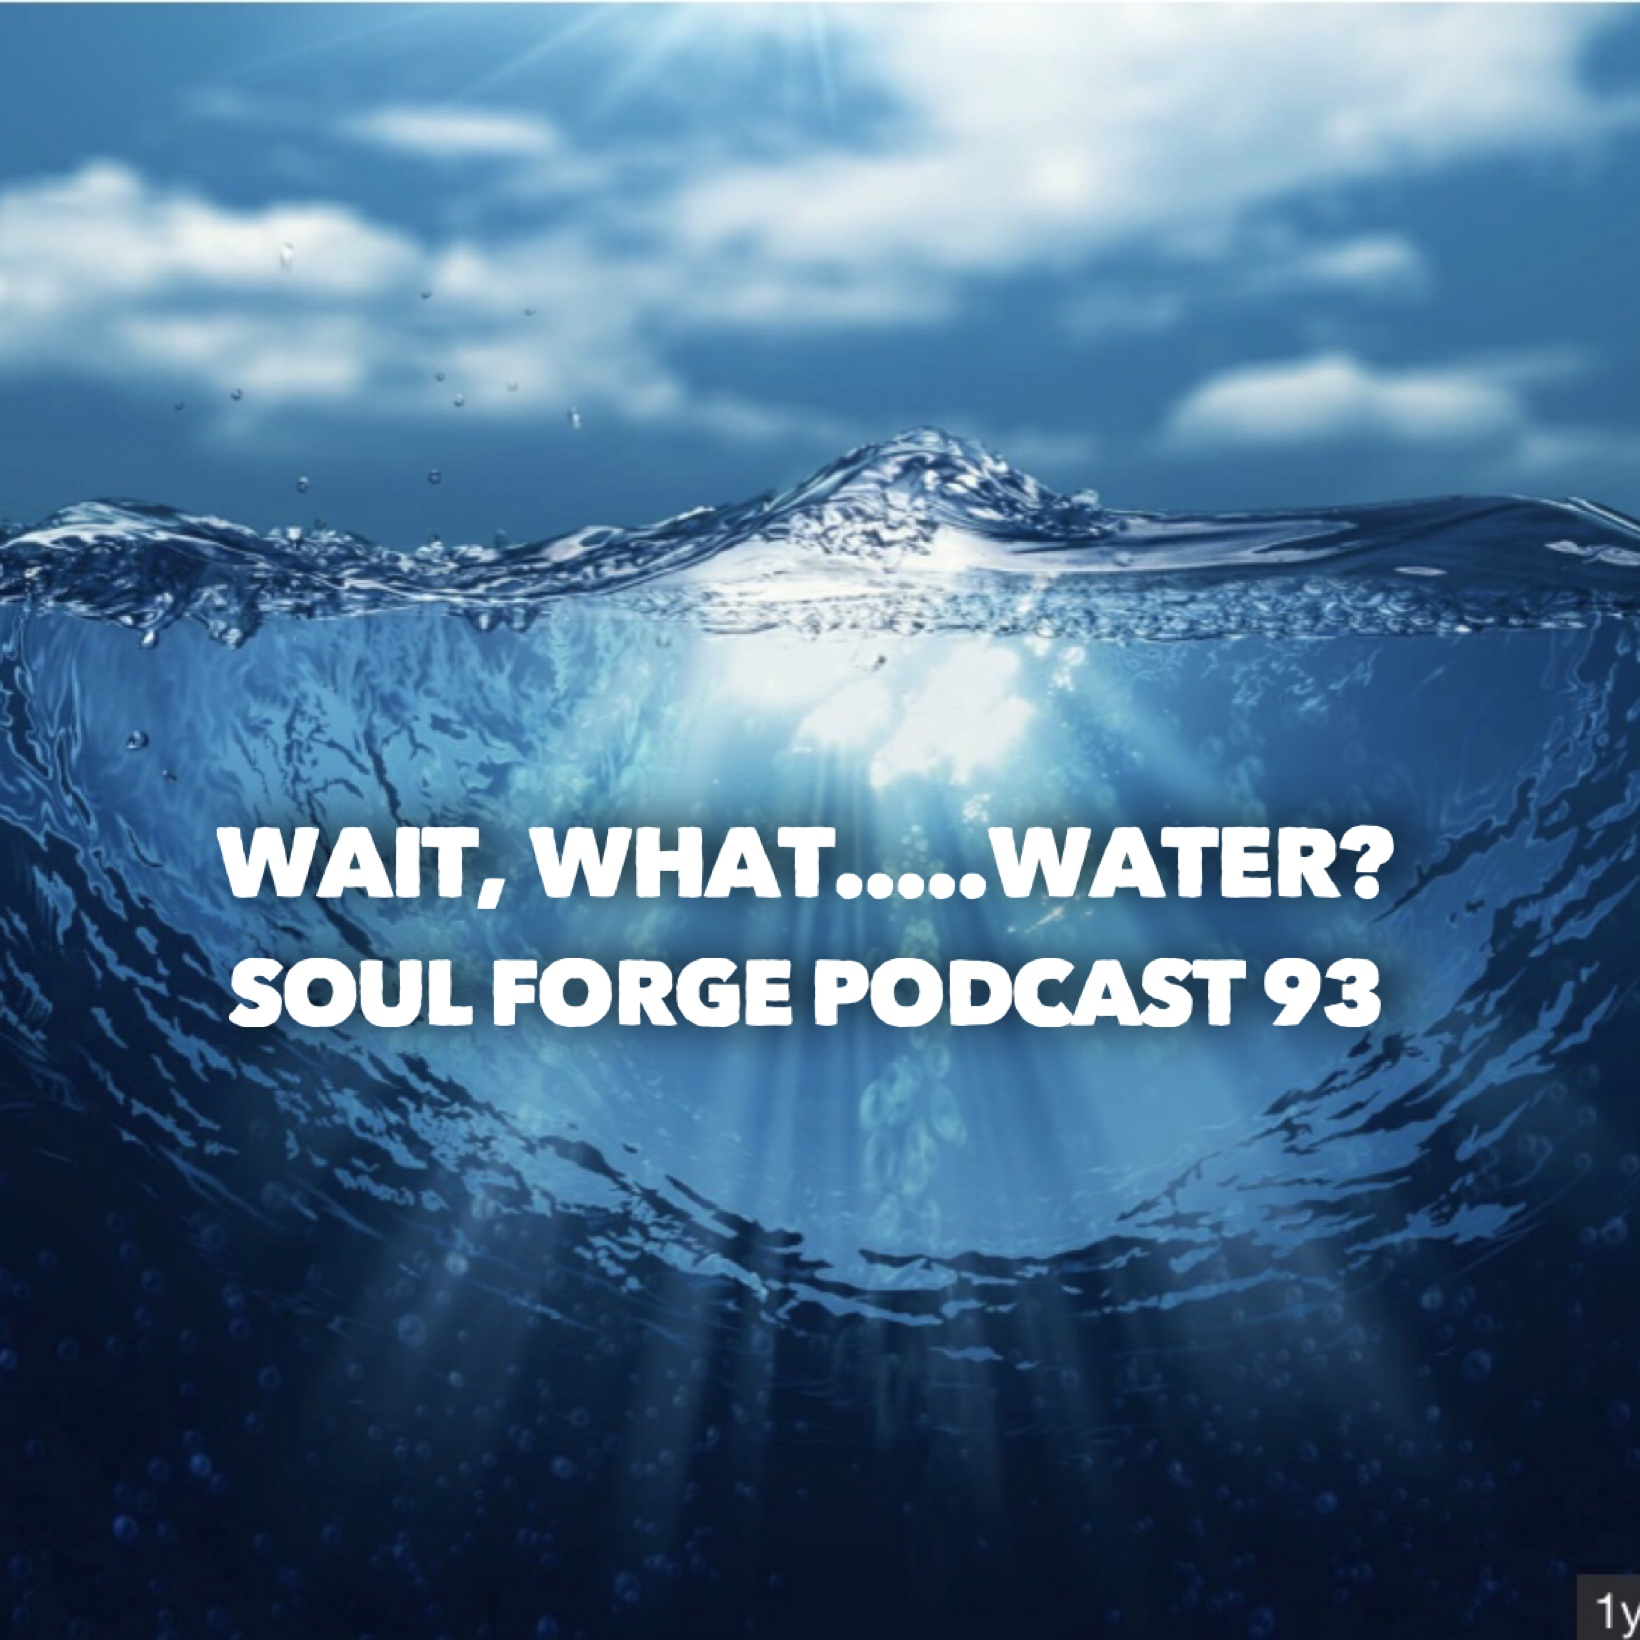 Wait, What. . . Water? - 93